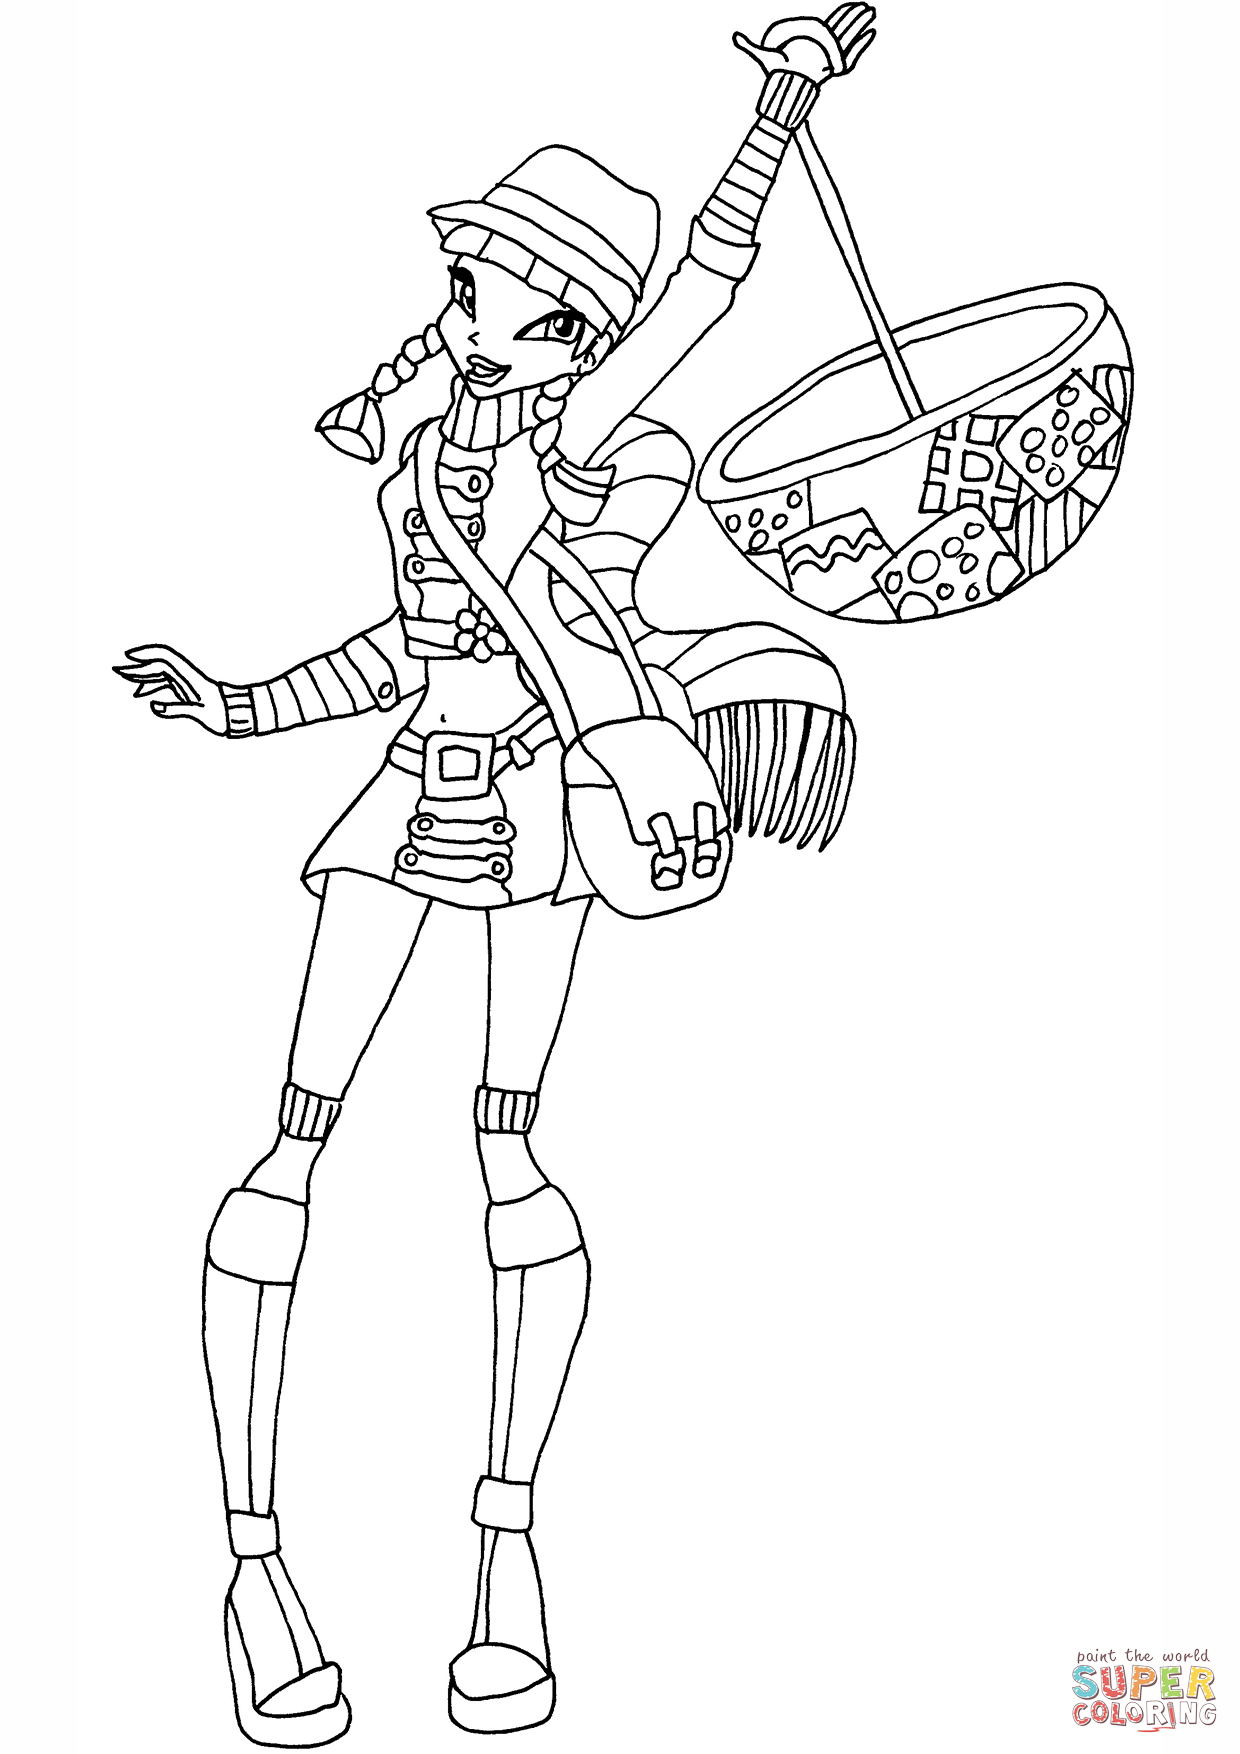 1240x1754 Musa Raincoat Coloring Page Free Printable Coloring Pages